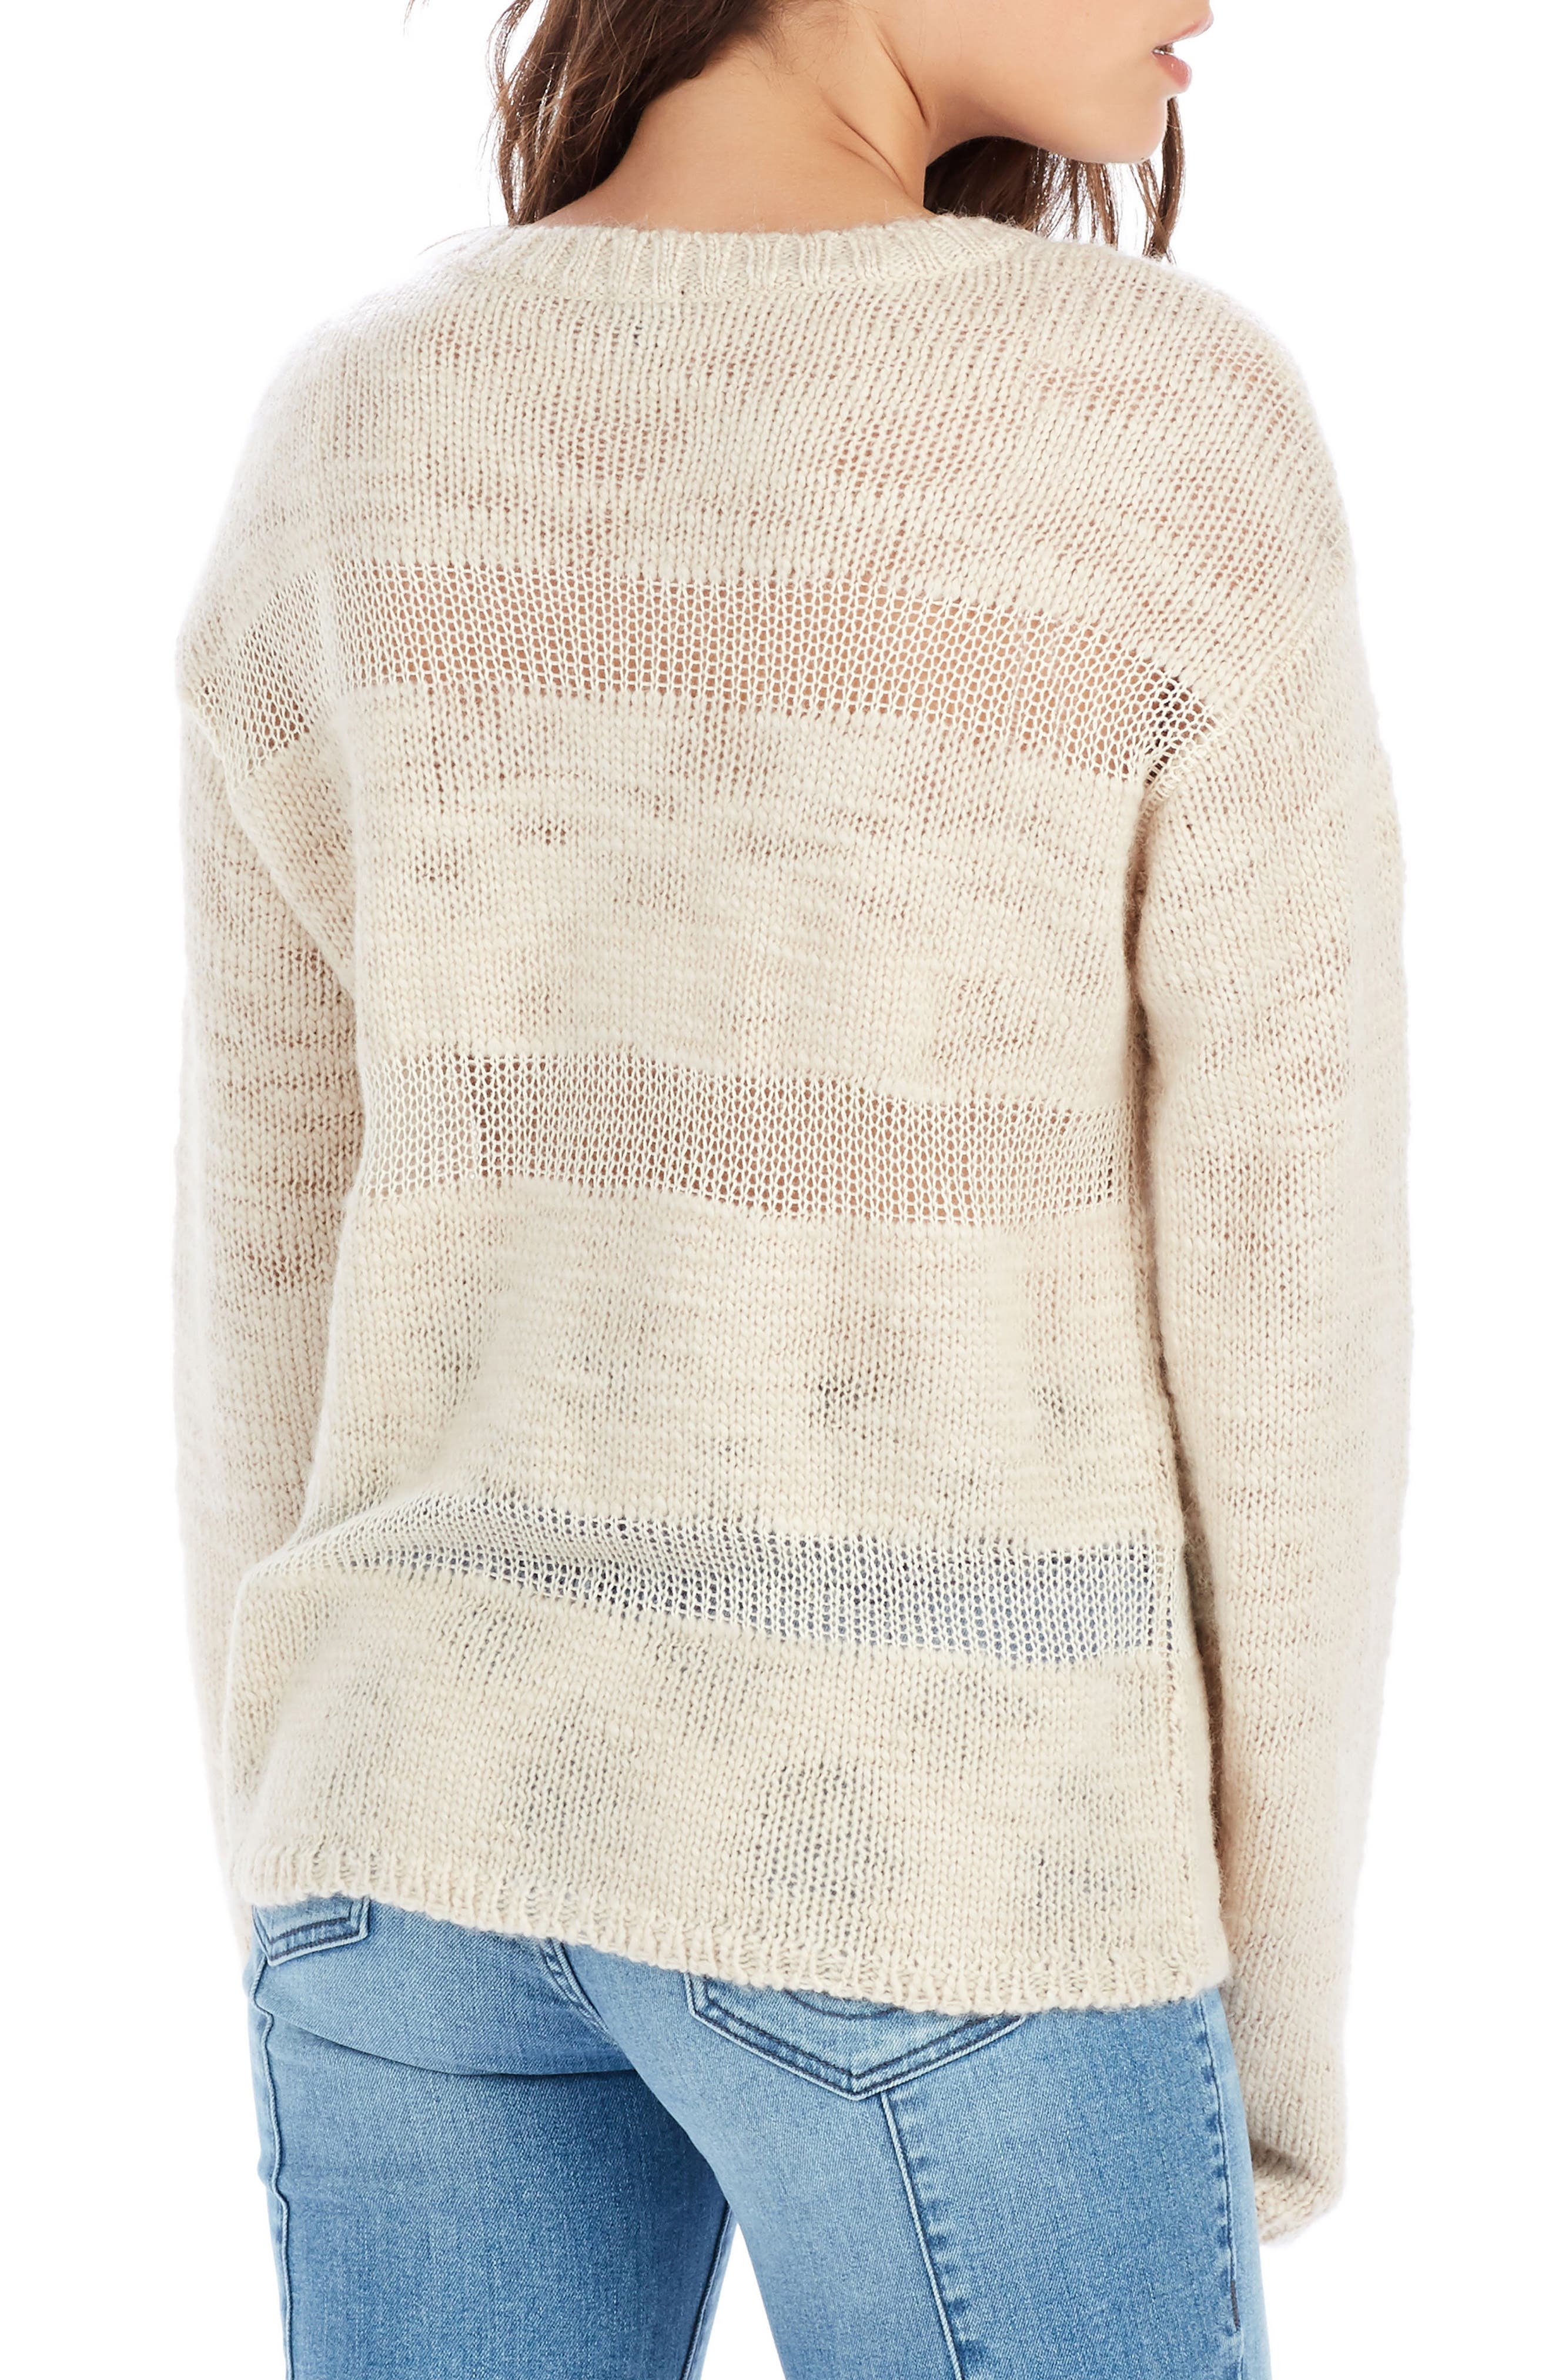 Stripe Sweater,                             Alternate thumbnail 2, color,                             Scuffed Beige